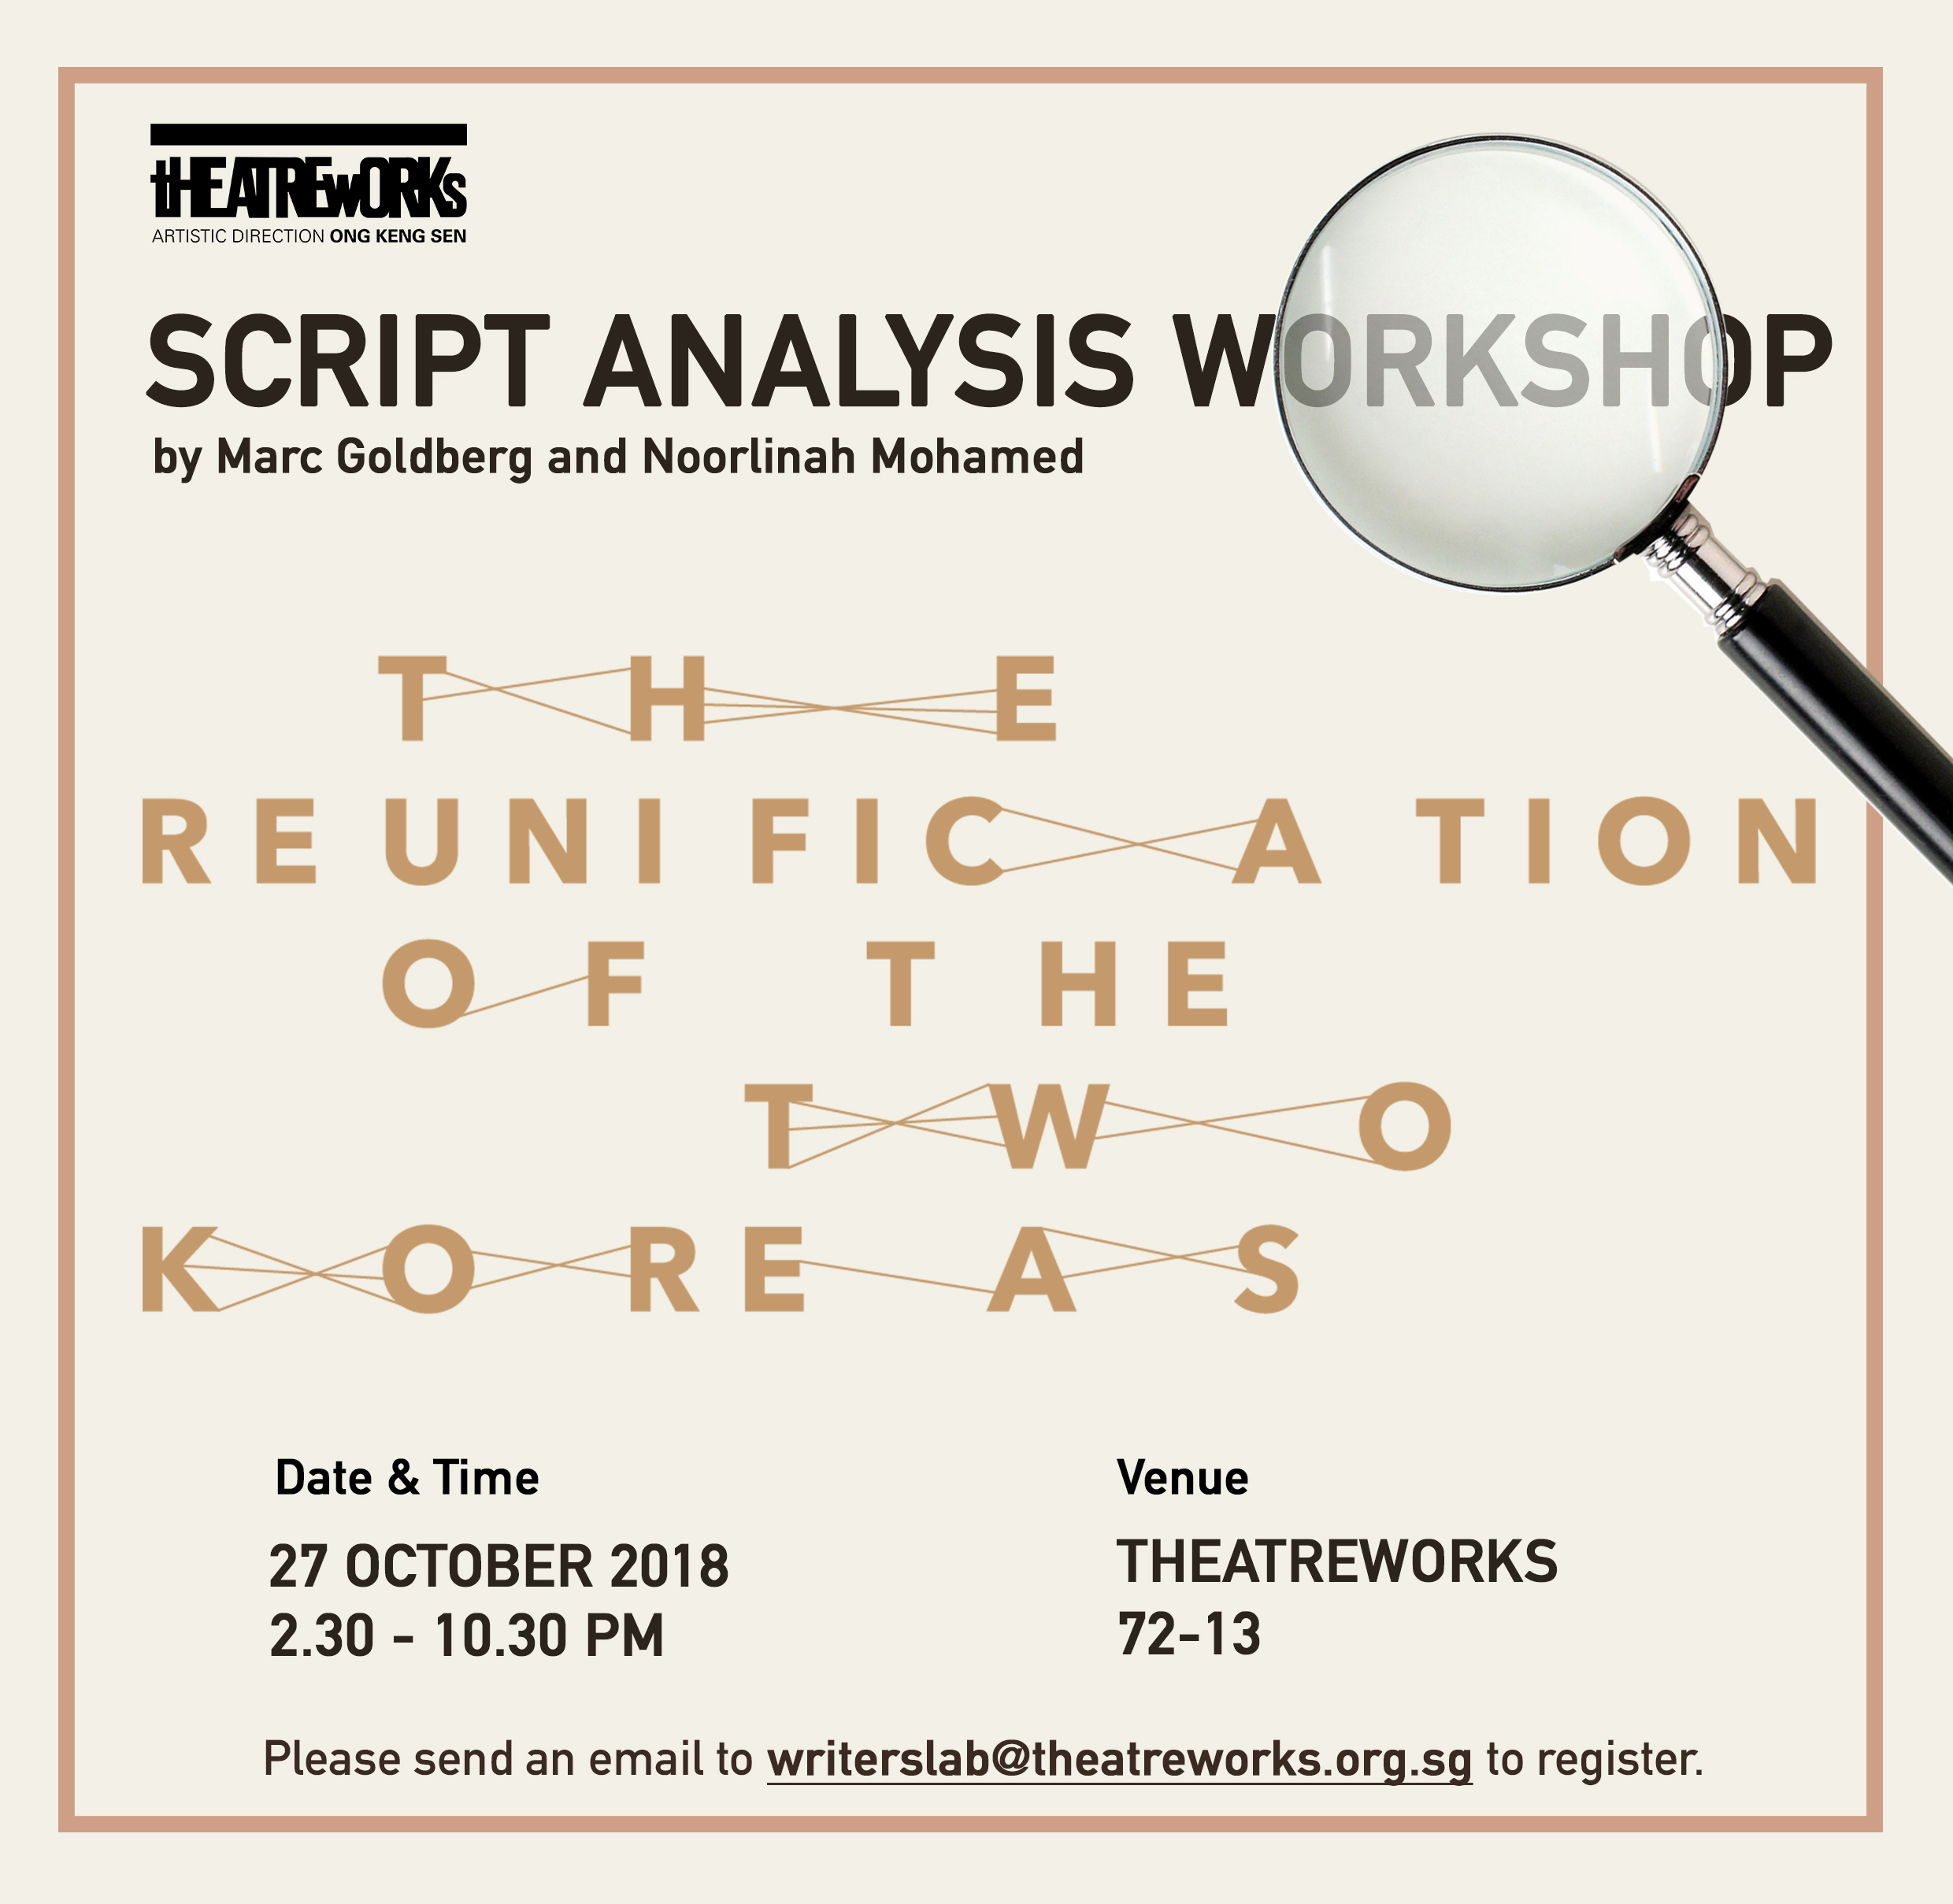 Script Analysis Workshop: The Reunification Of The Two Koreas